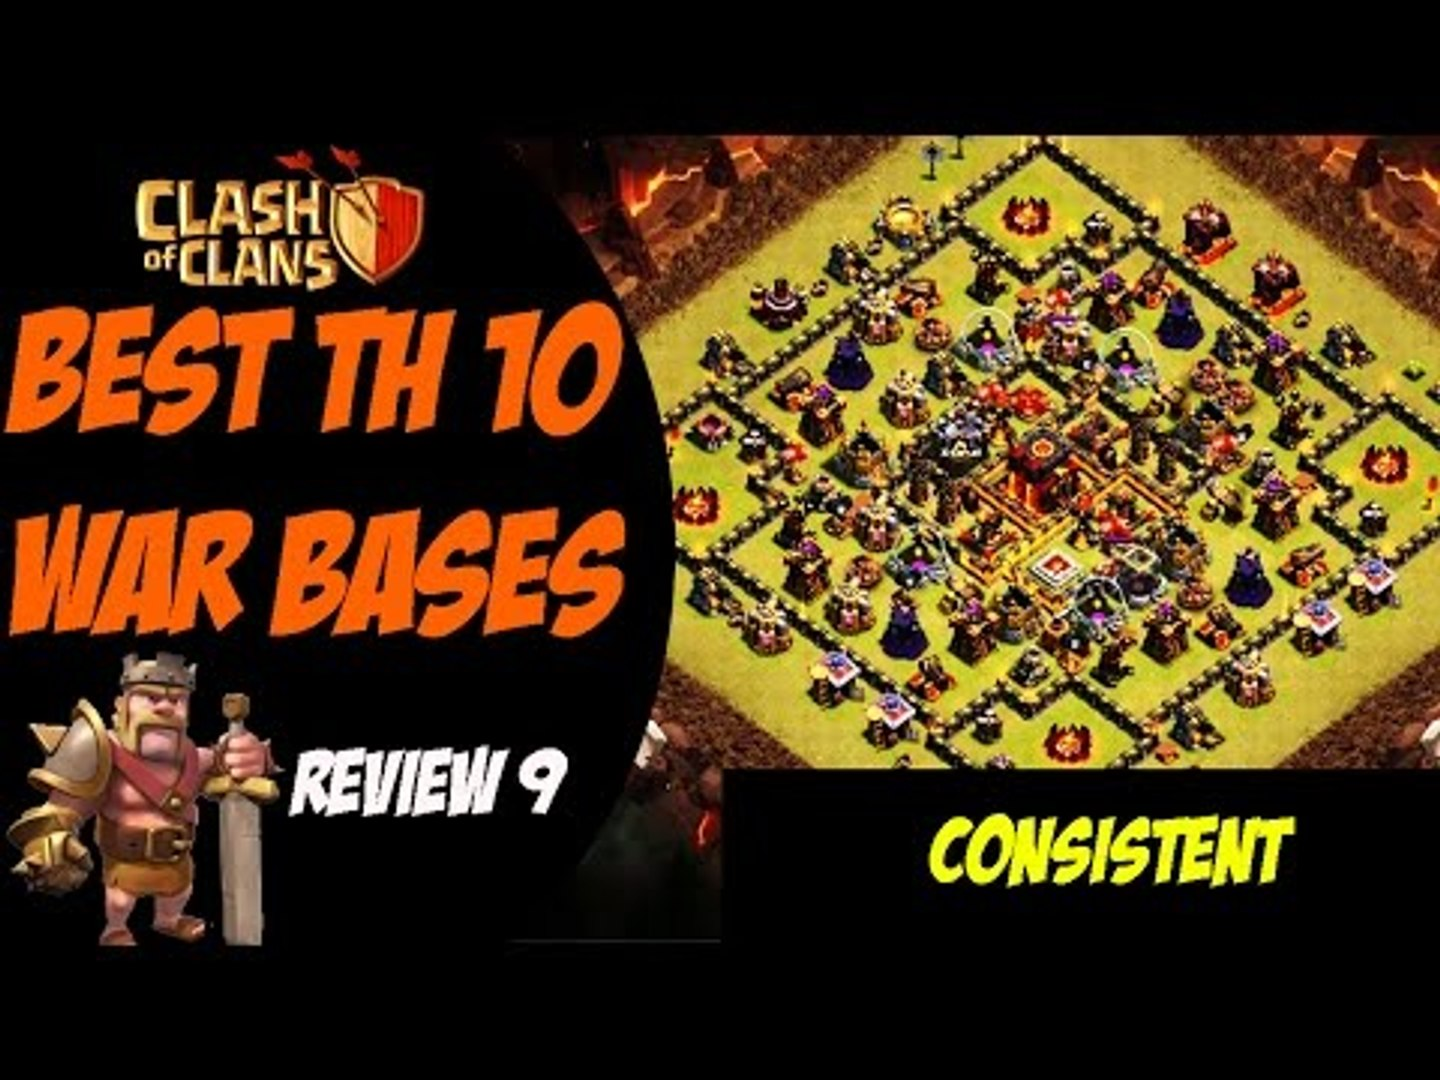 Consistent Defense in Clan Wars Post TH11 Update | Best TH10 War Base Design #9 | Clash of Clans